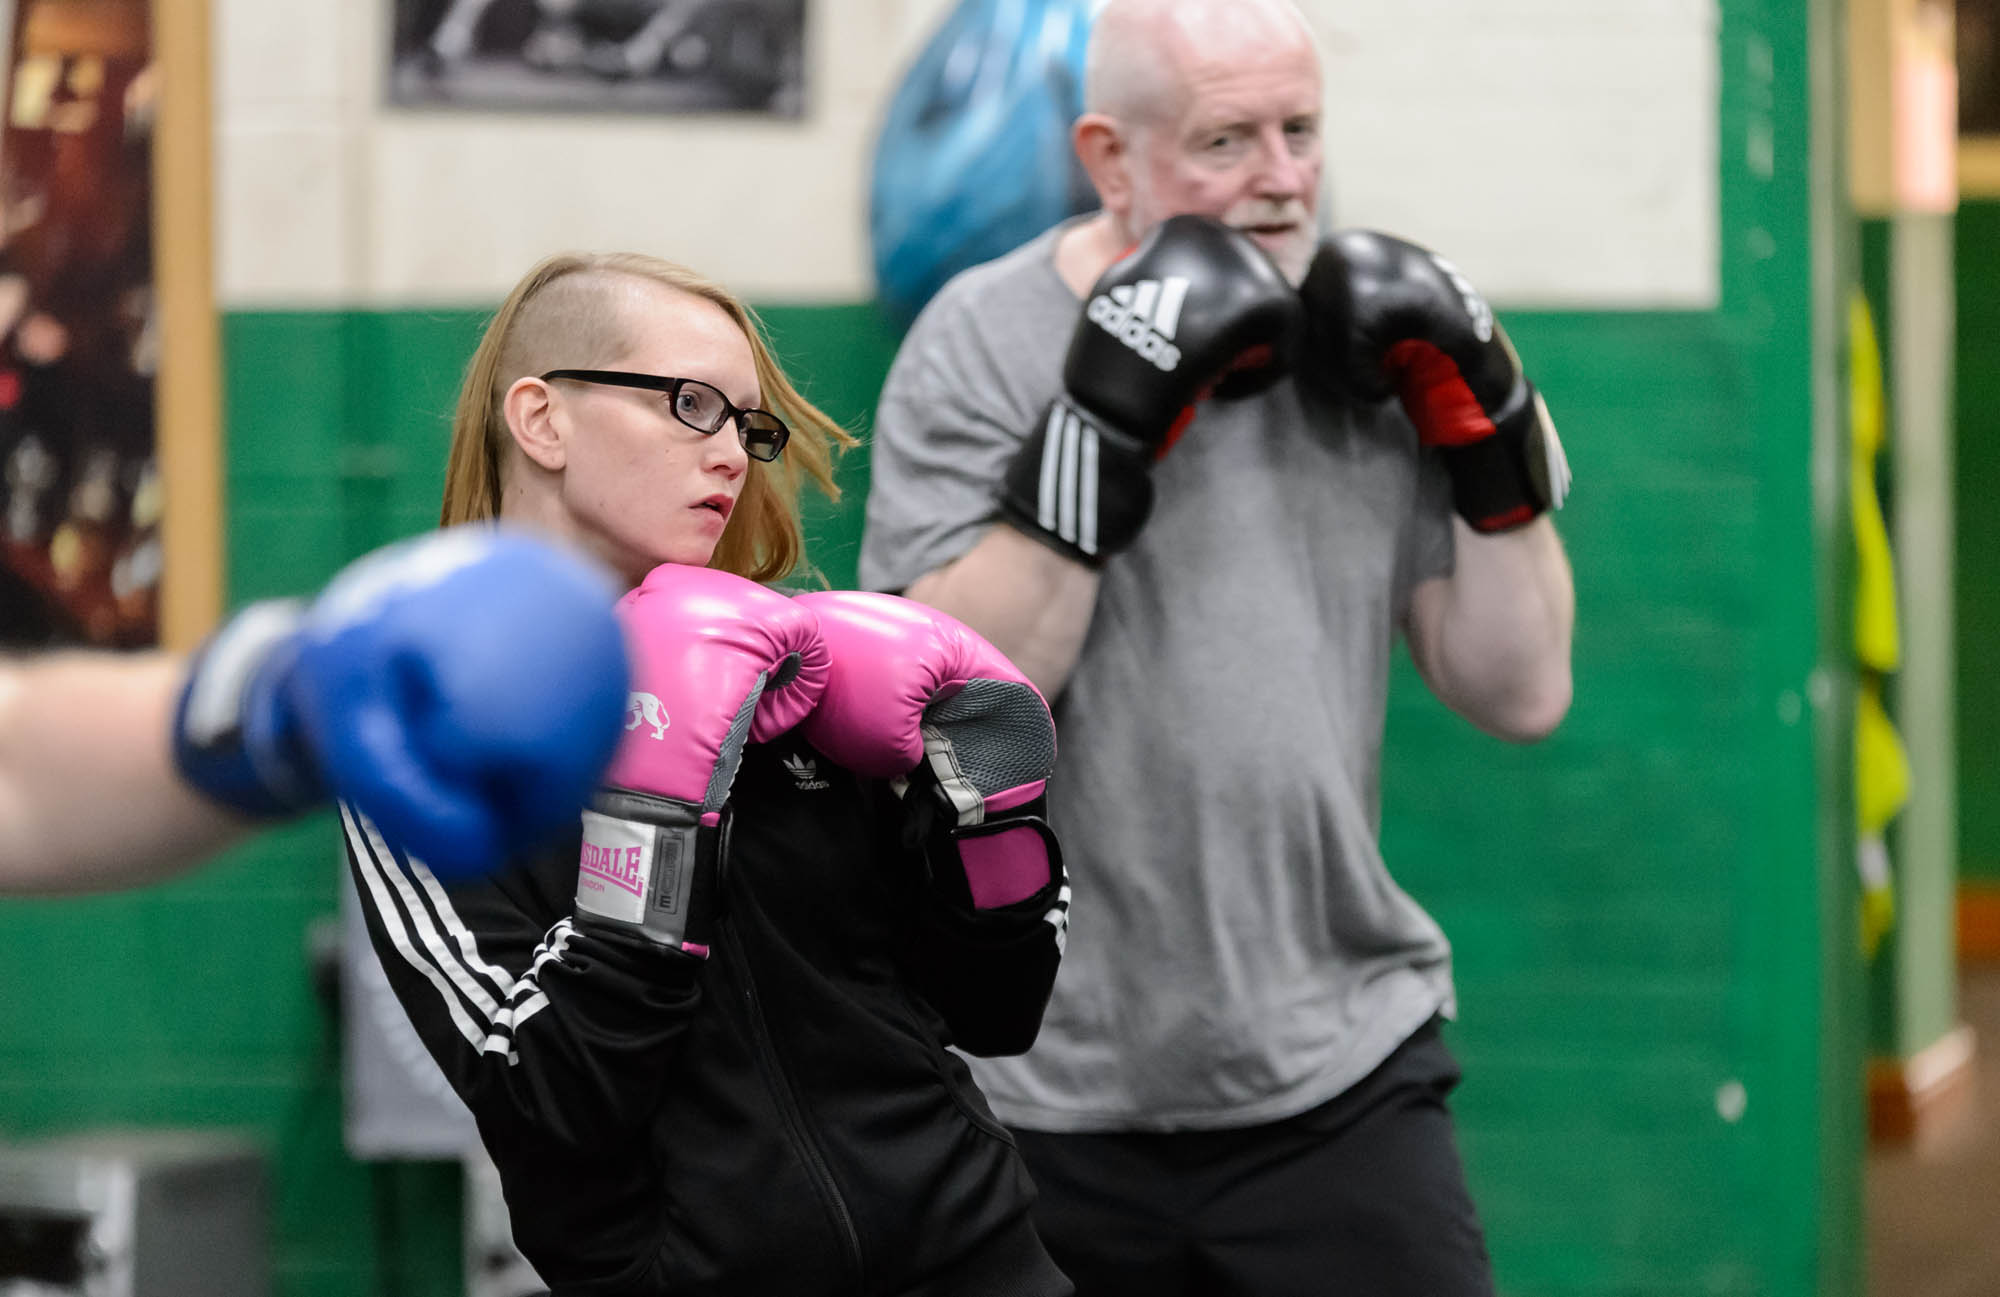 A young woman ducks and dives in boxing training